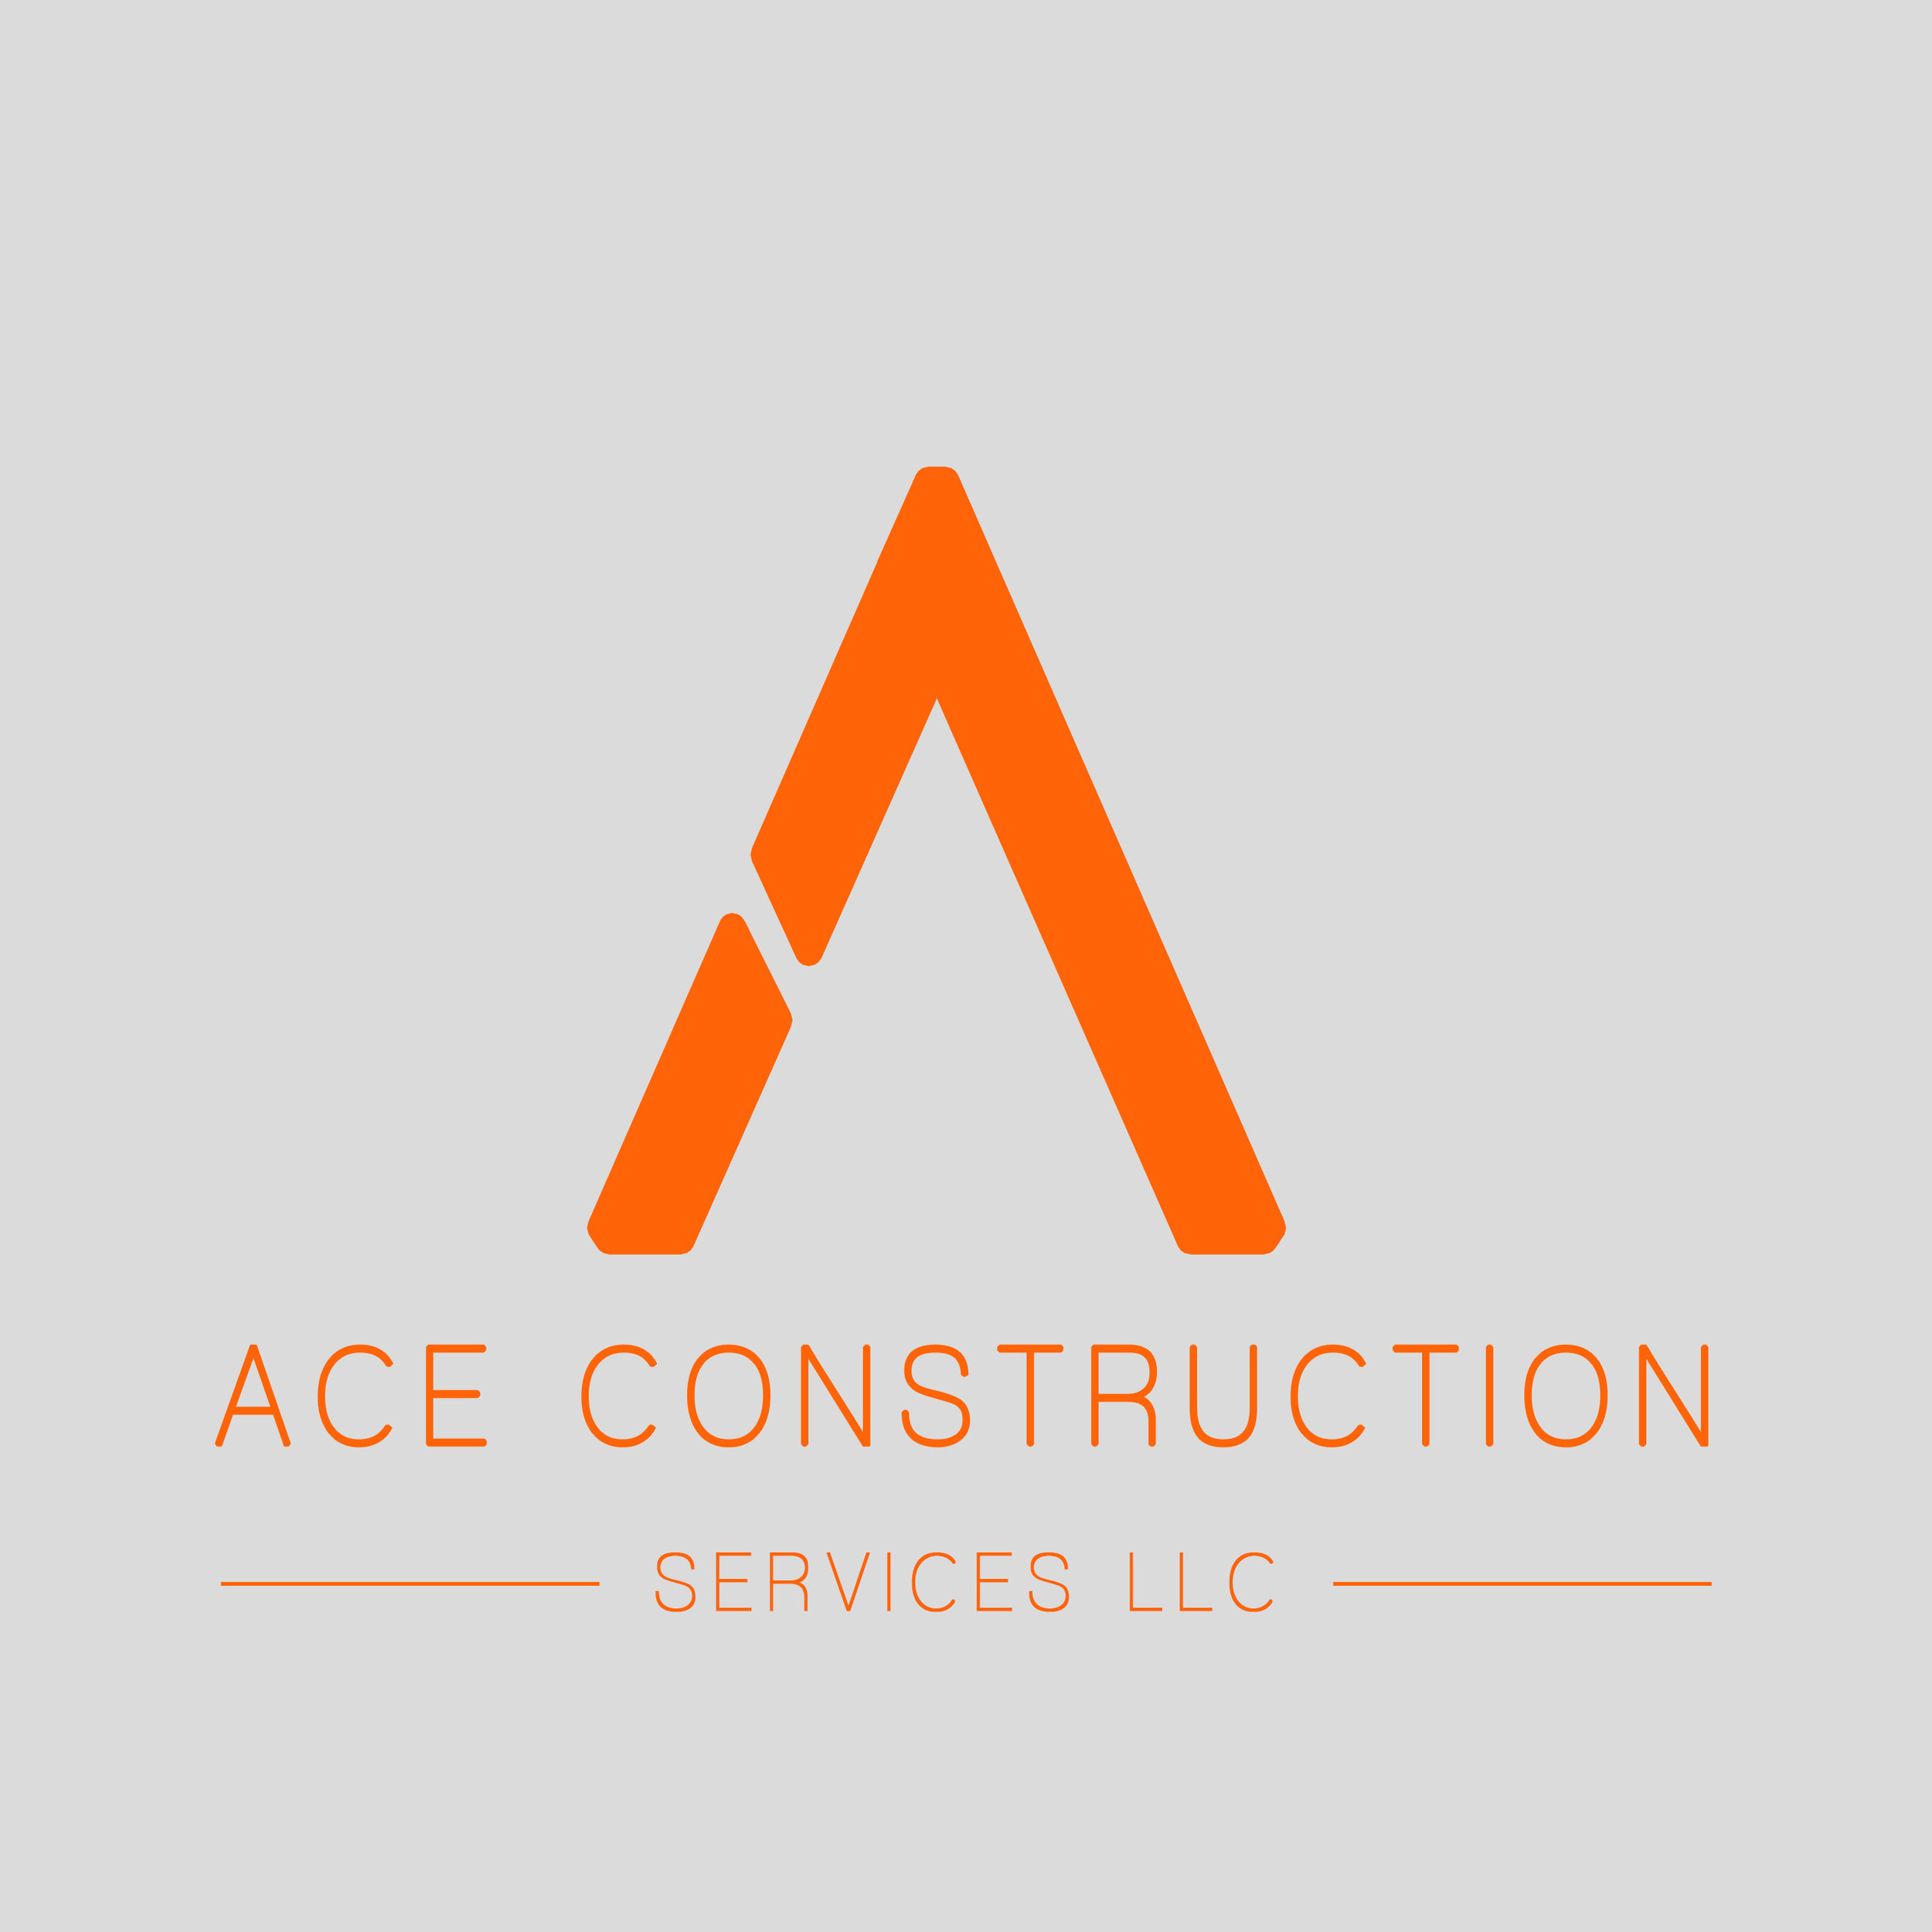 acs logo orange 4.jpg